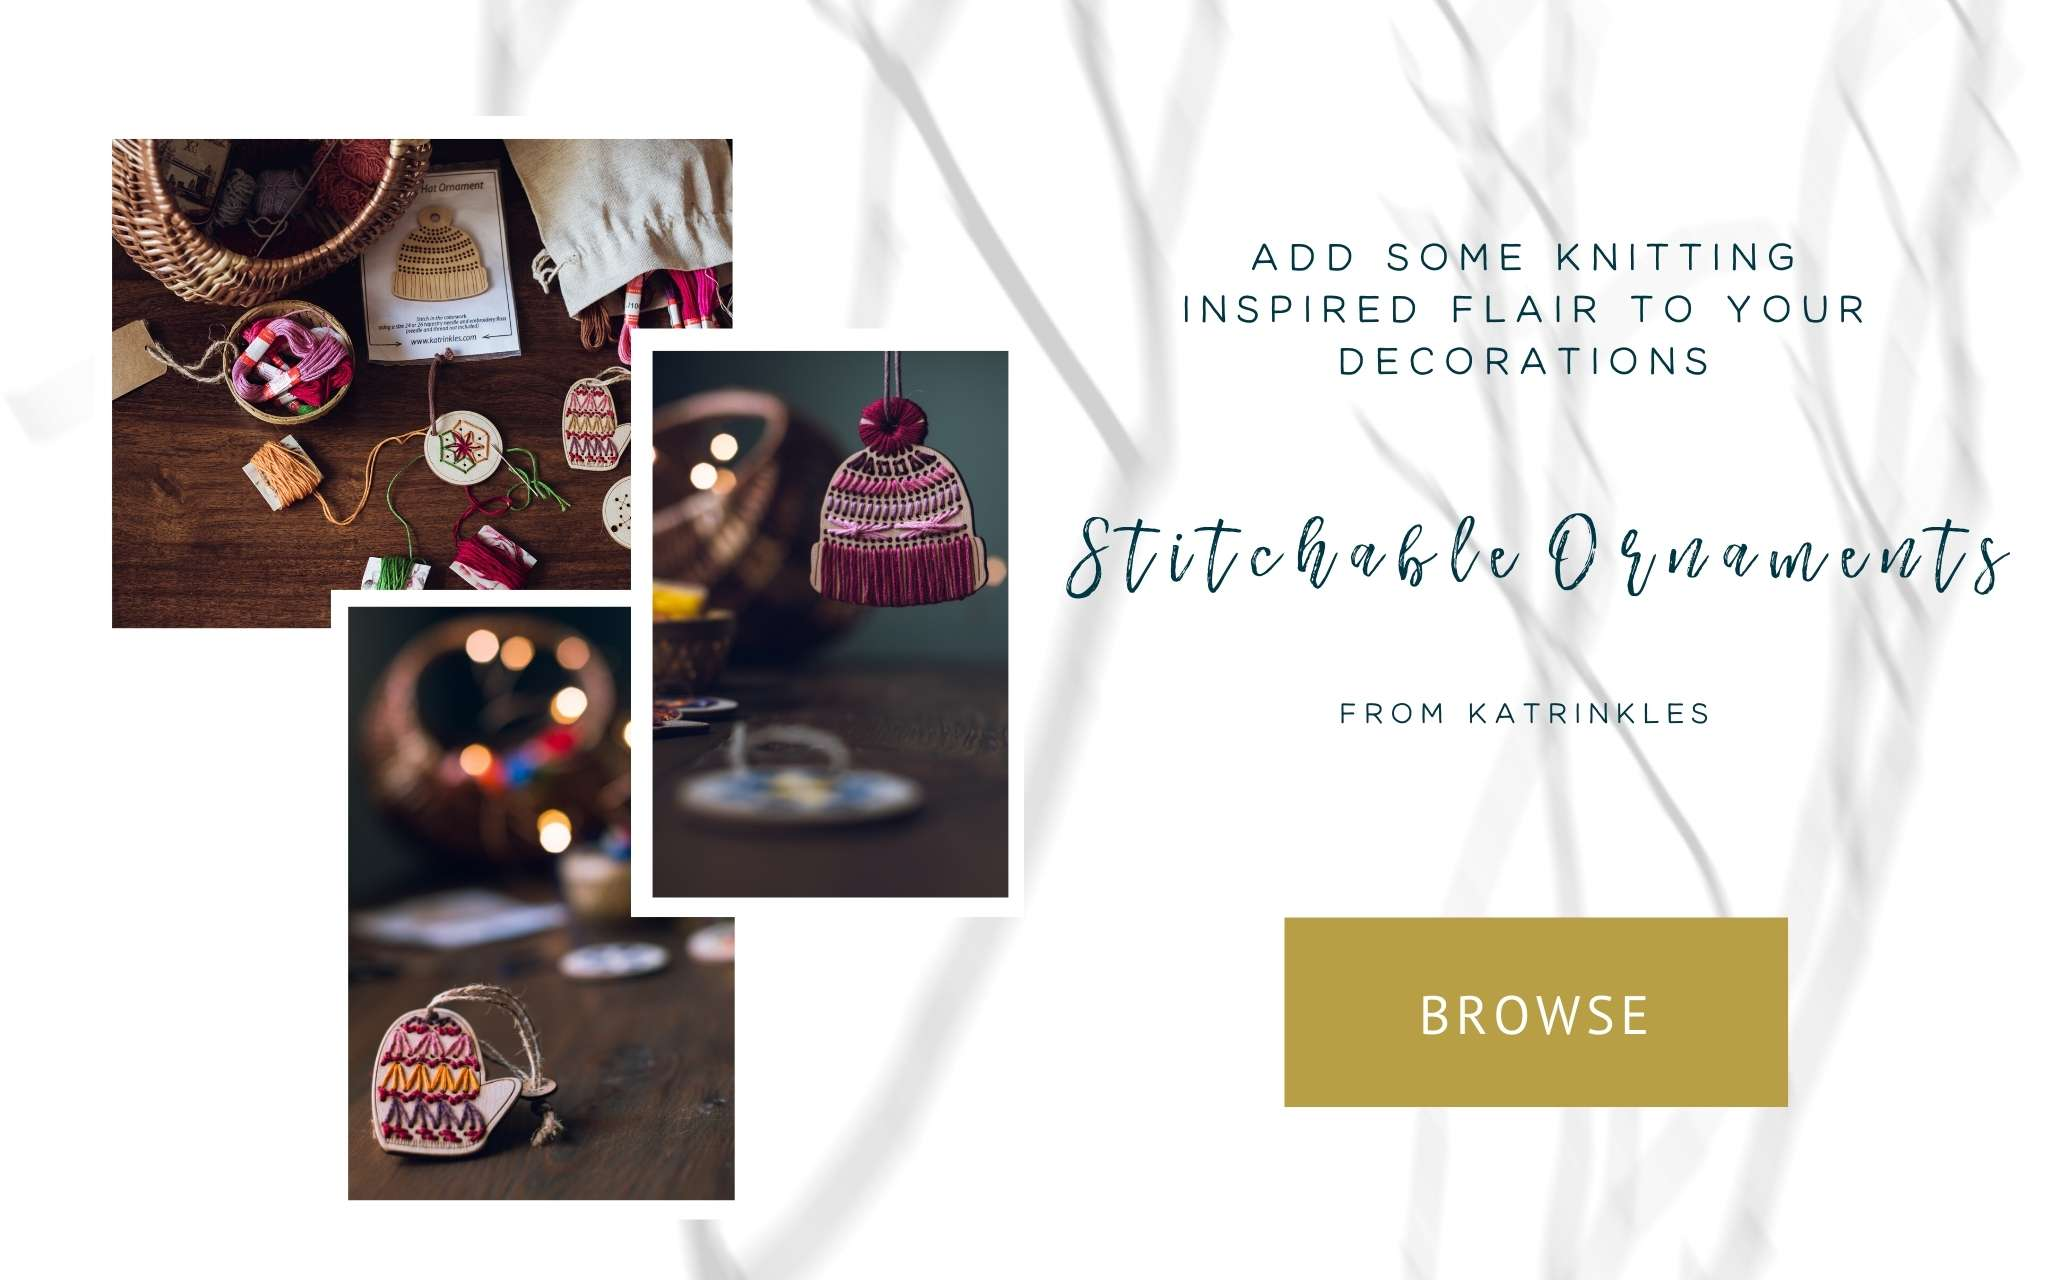 Stitchable ornaments from Katrinkles